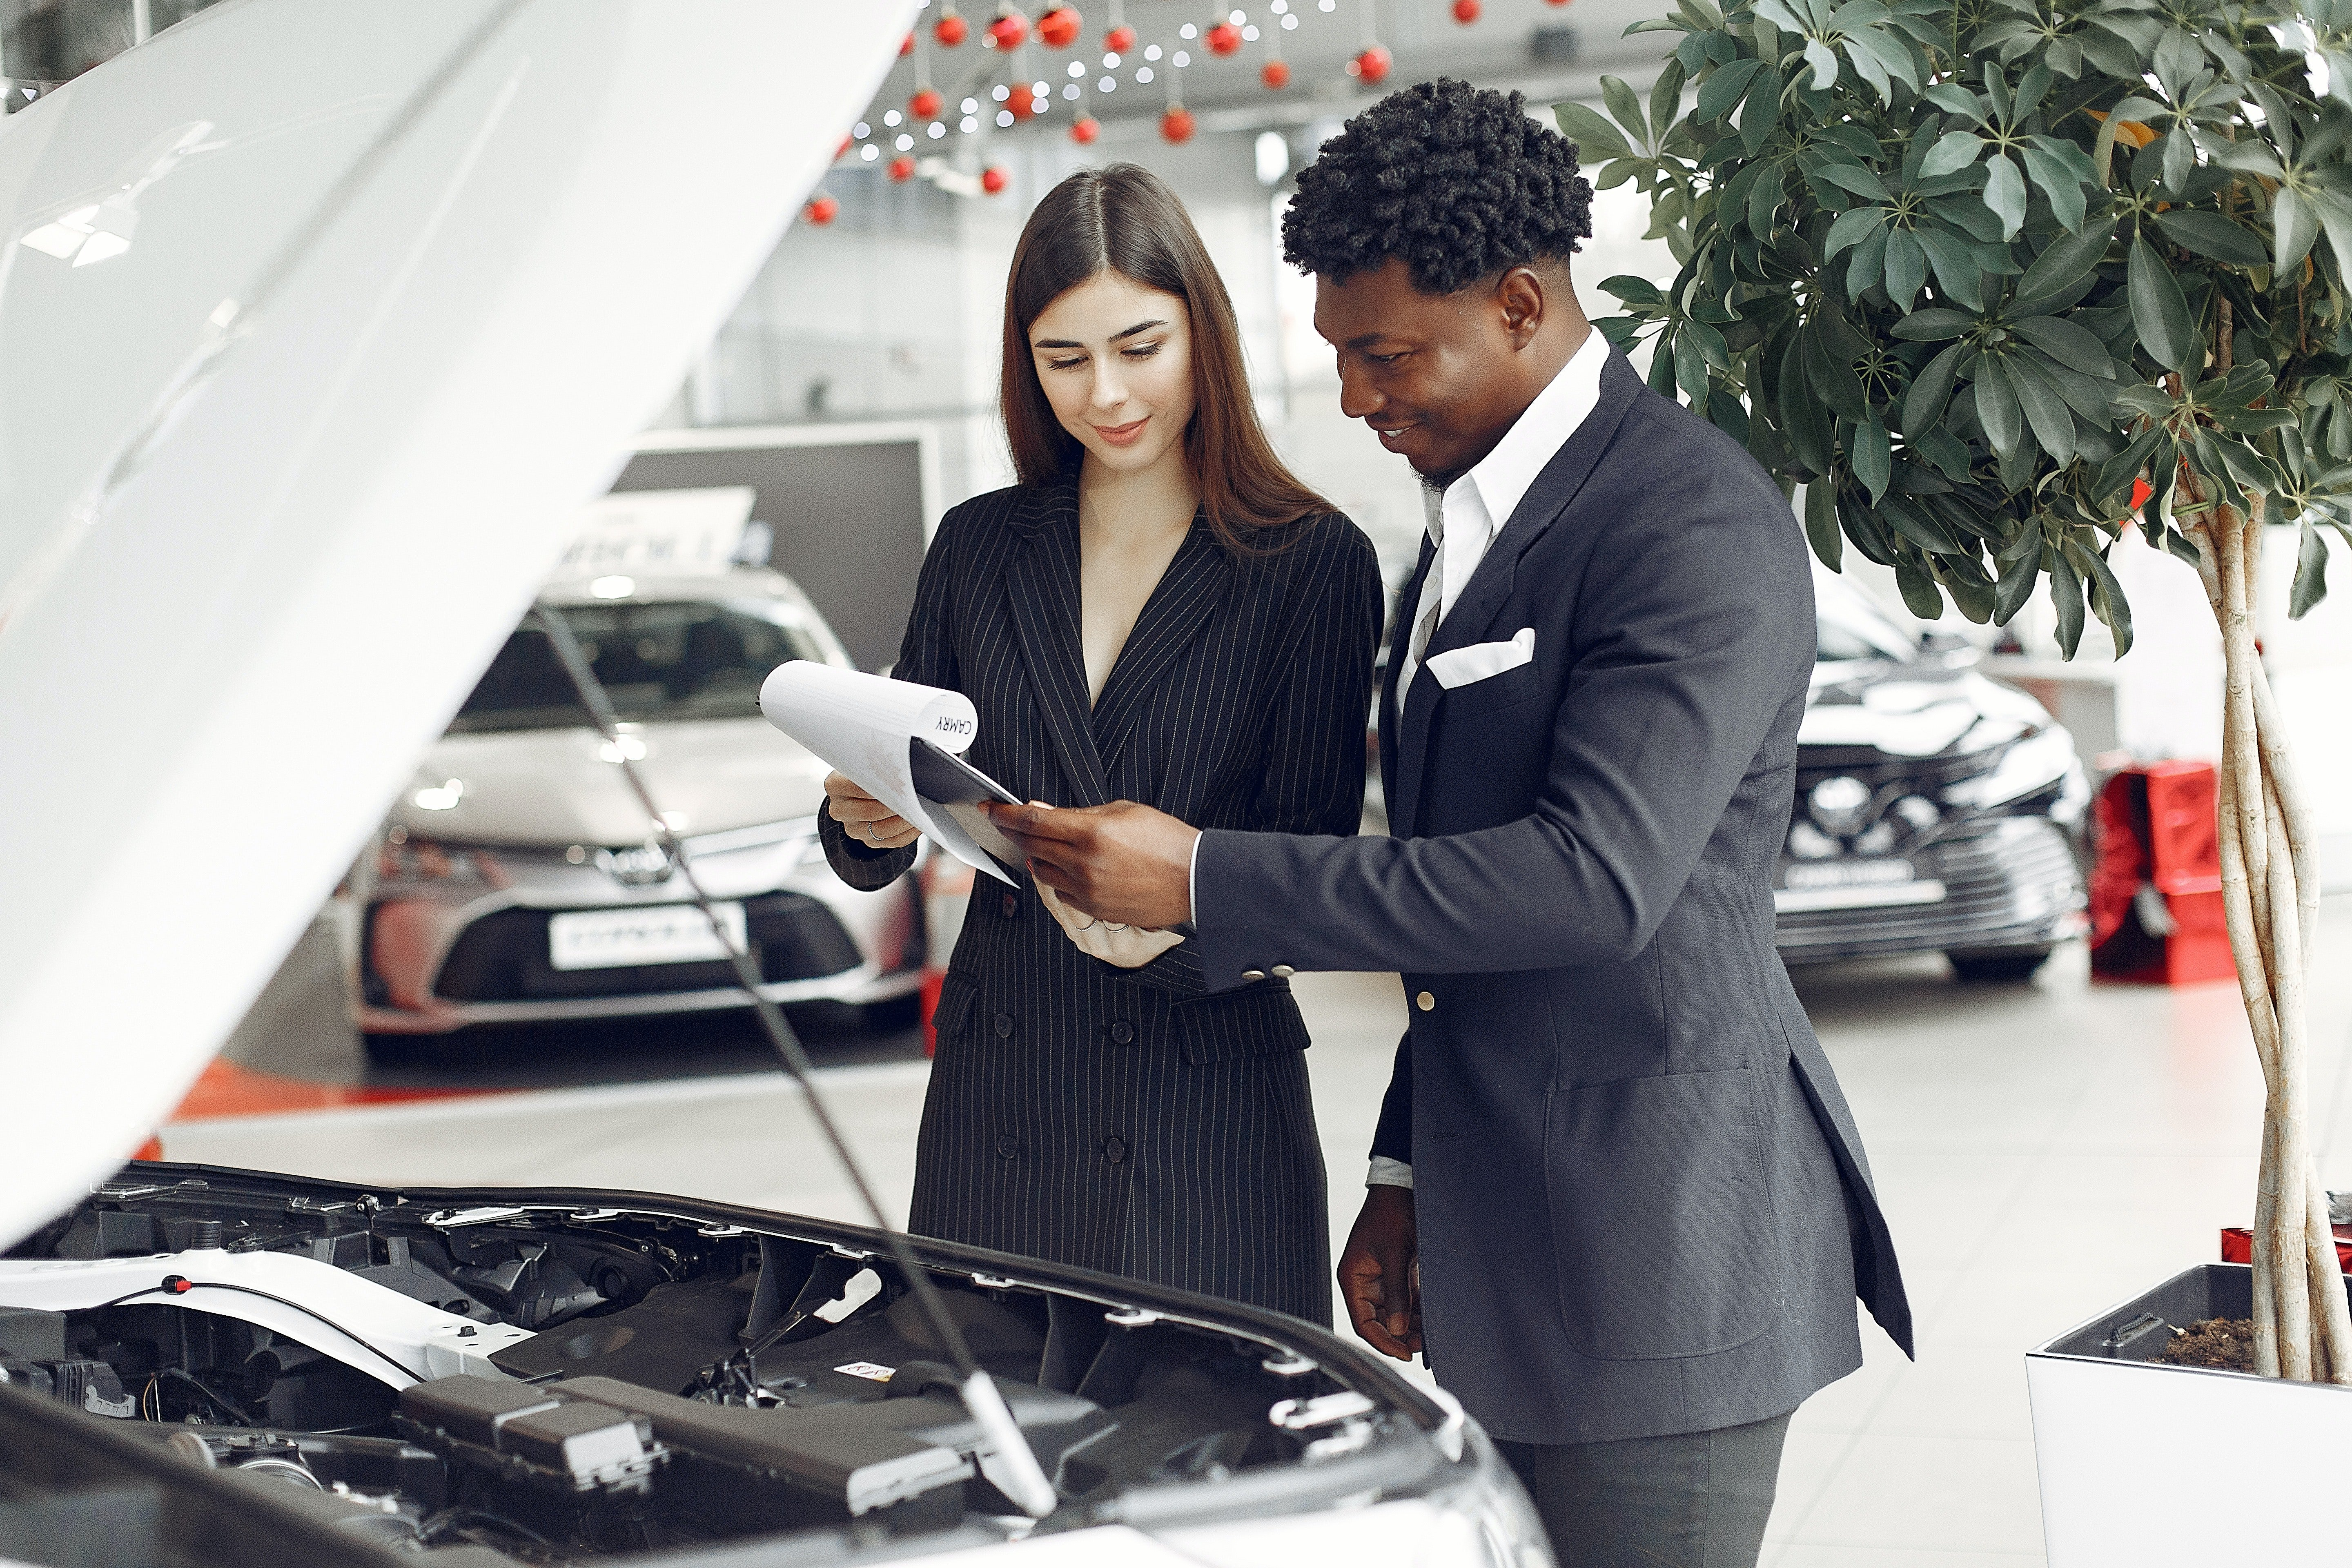 How to Improve the Car Buying Experience